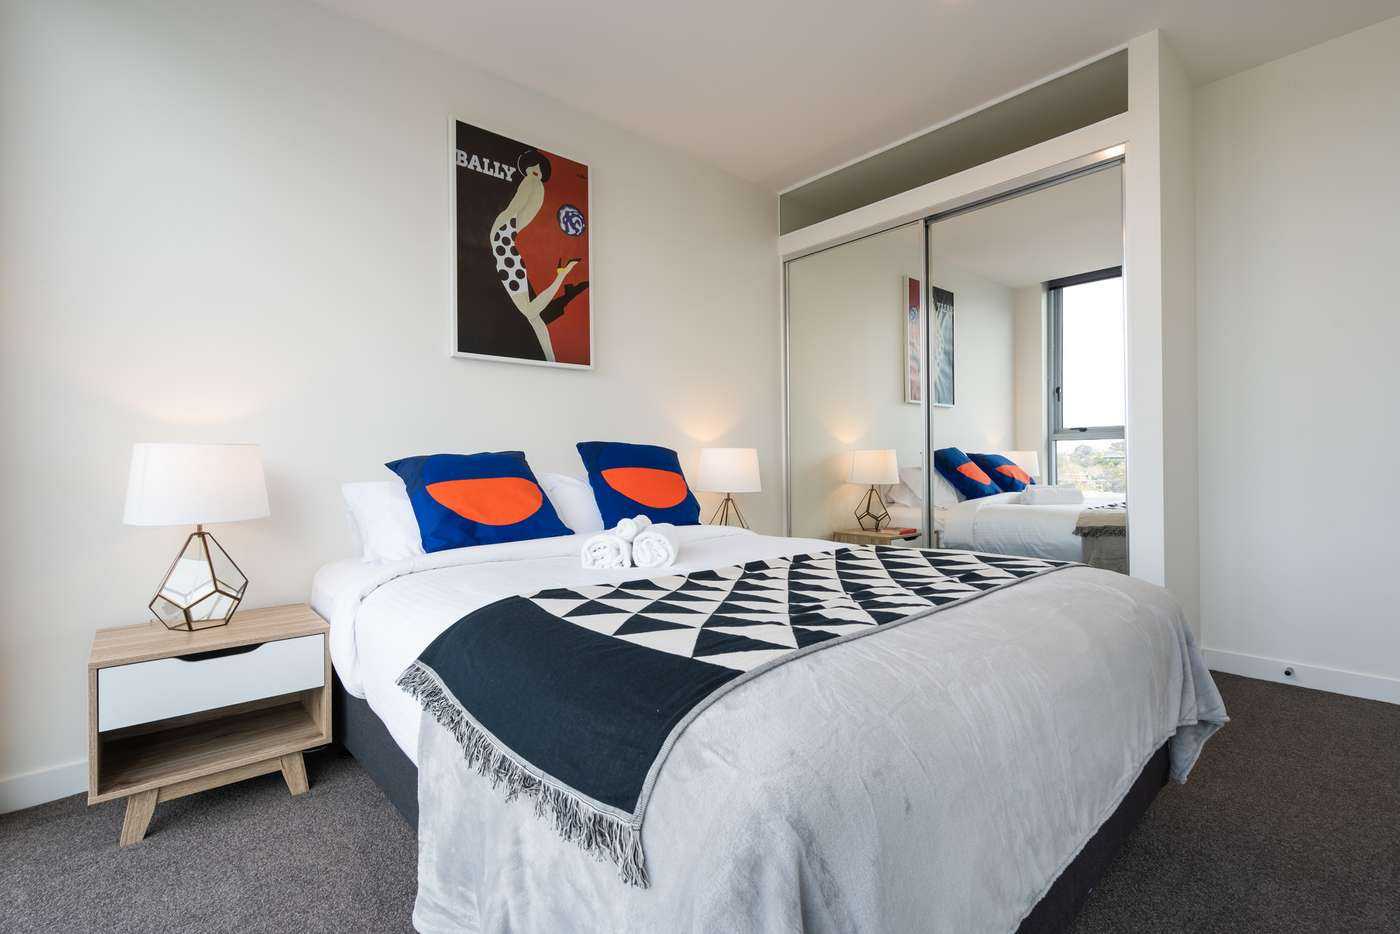 Sixth view of Homely apartment listing, 617/14 David Street, Richmond VIC 3121